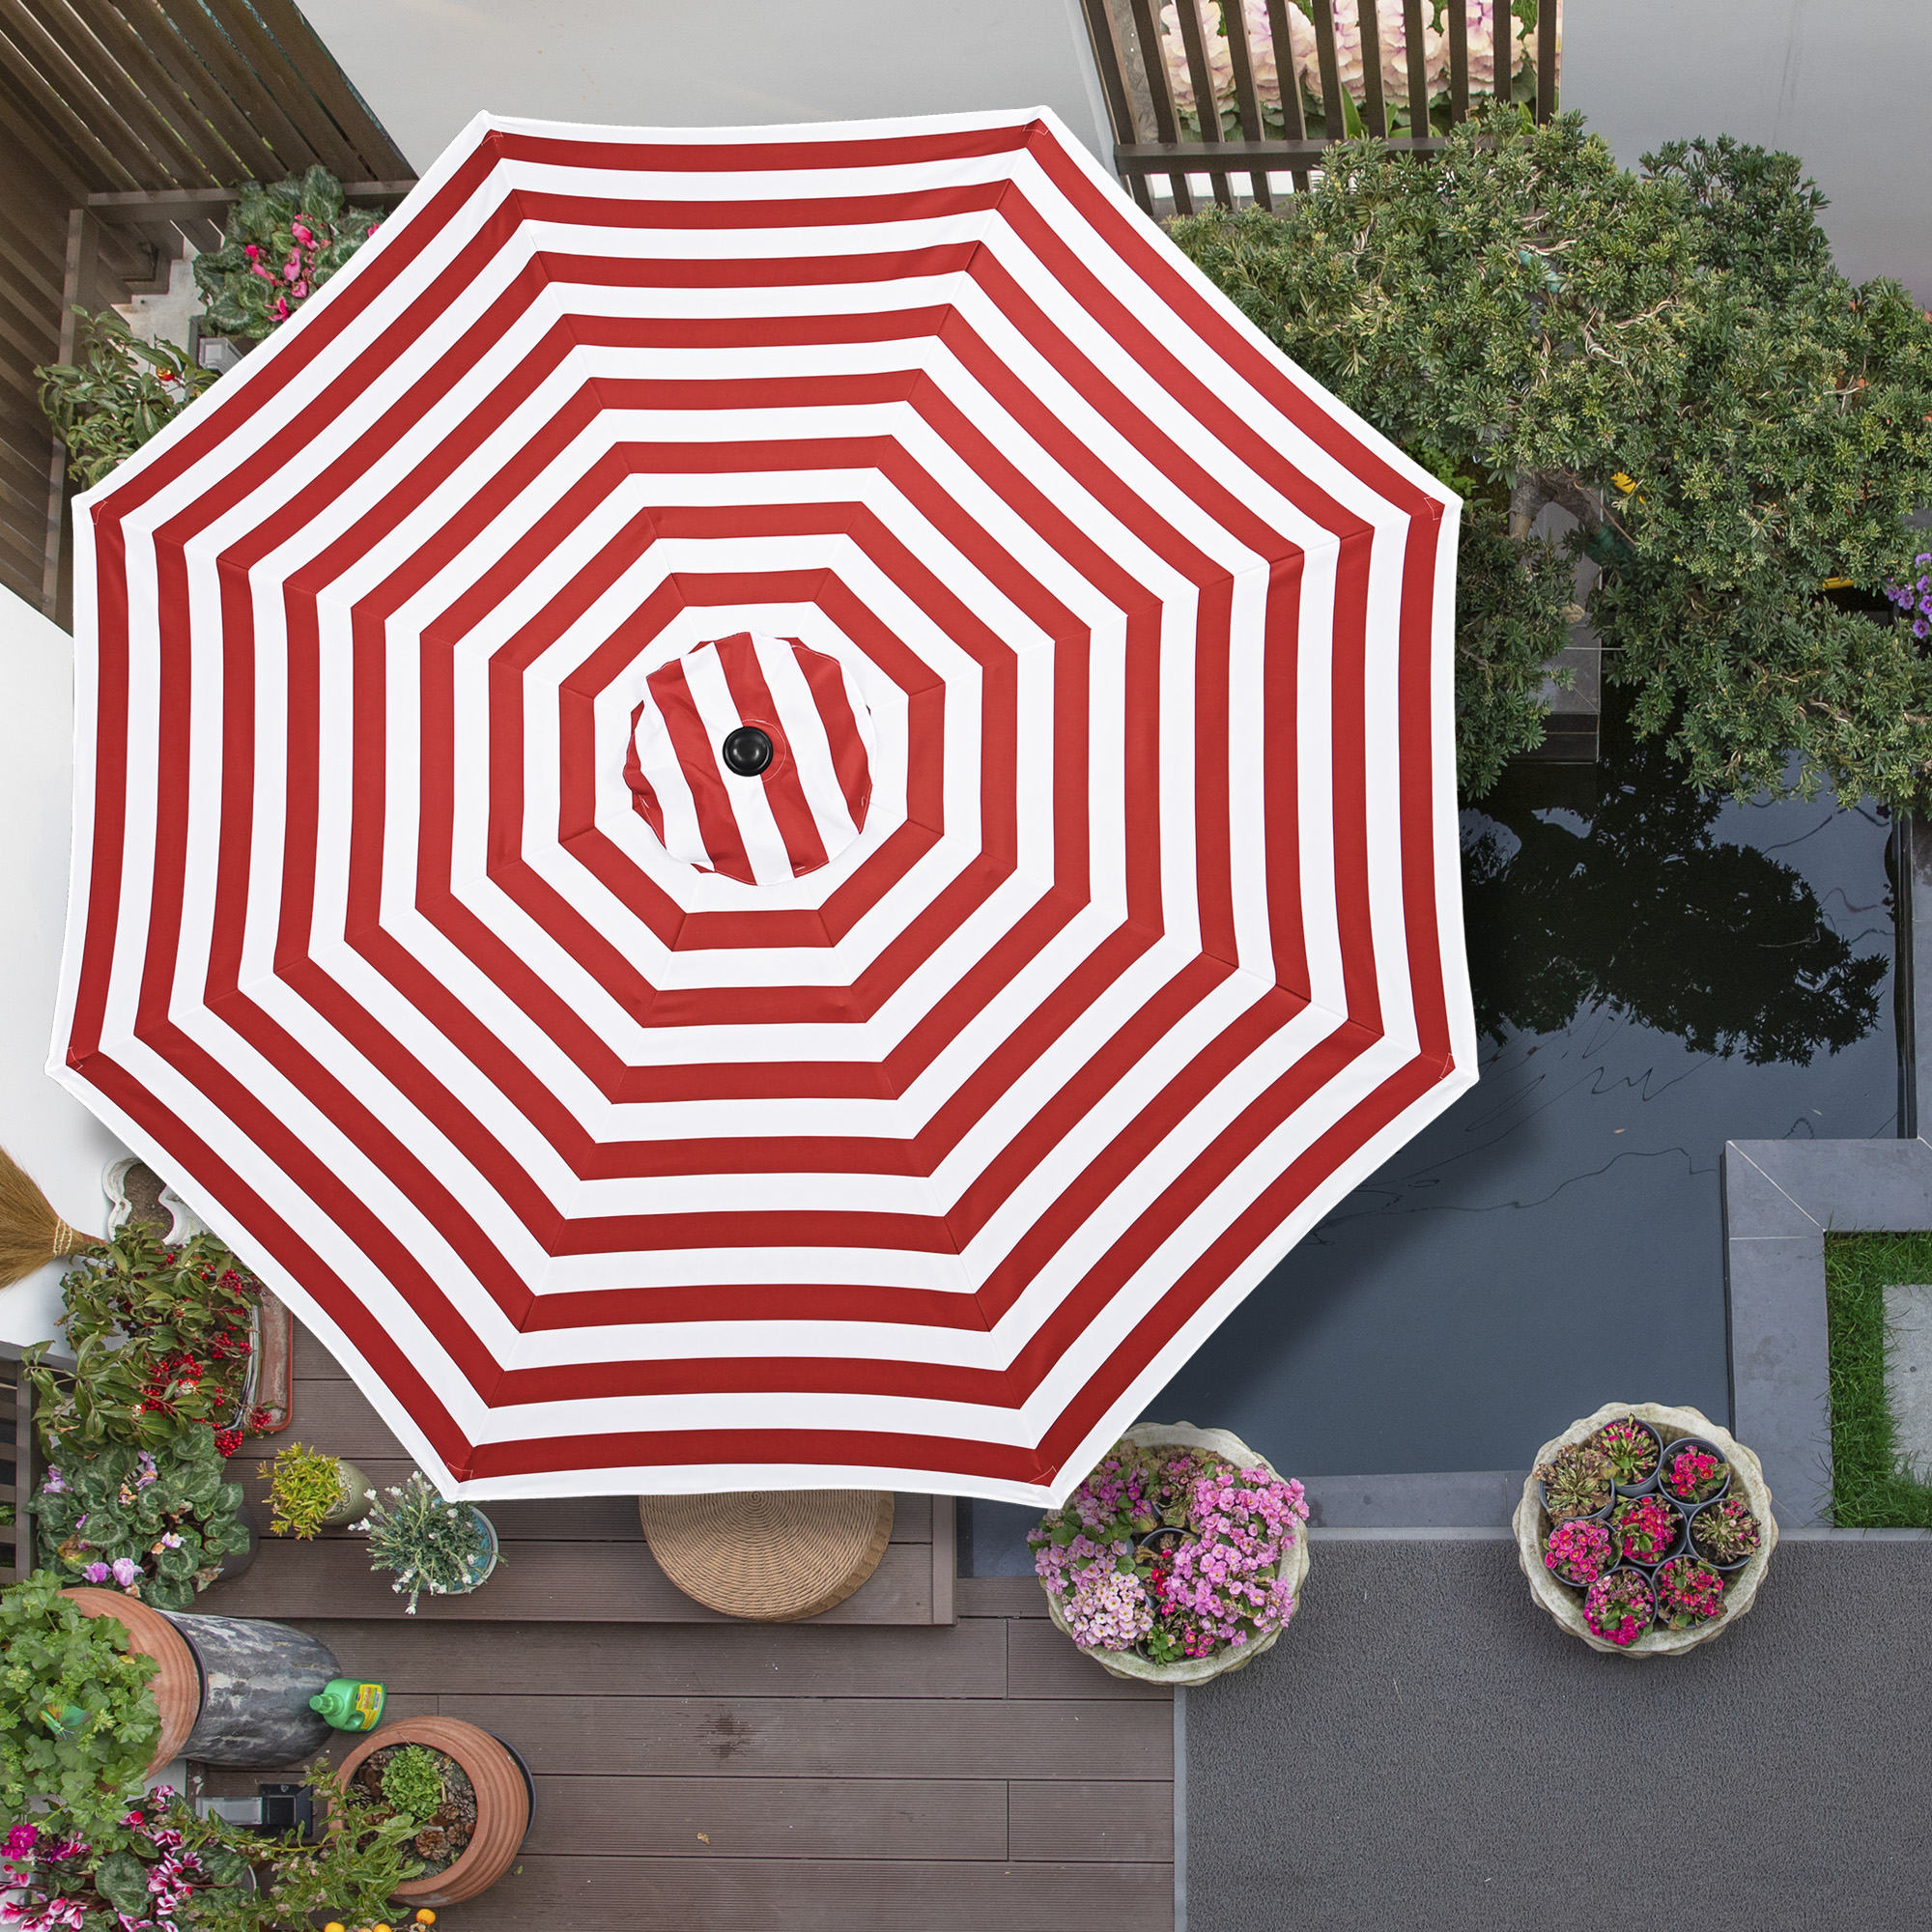 thumbnail 101 - 8'/9'/10'/13' Umbrella Replacement Canopy 8 Rib Outdoor Patio Top Cover Only Opt